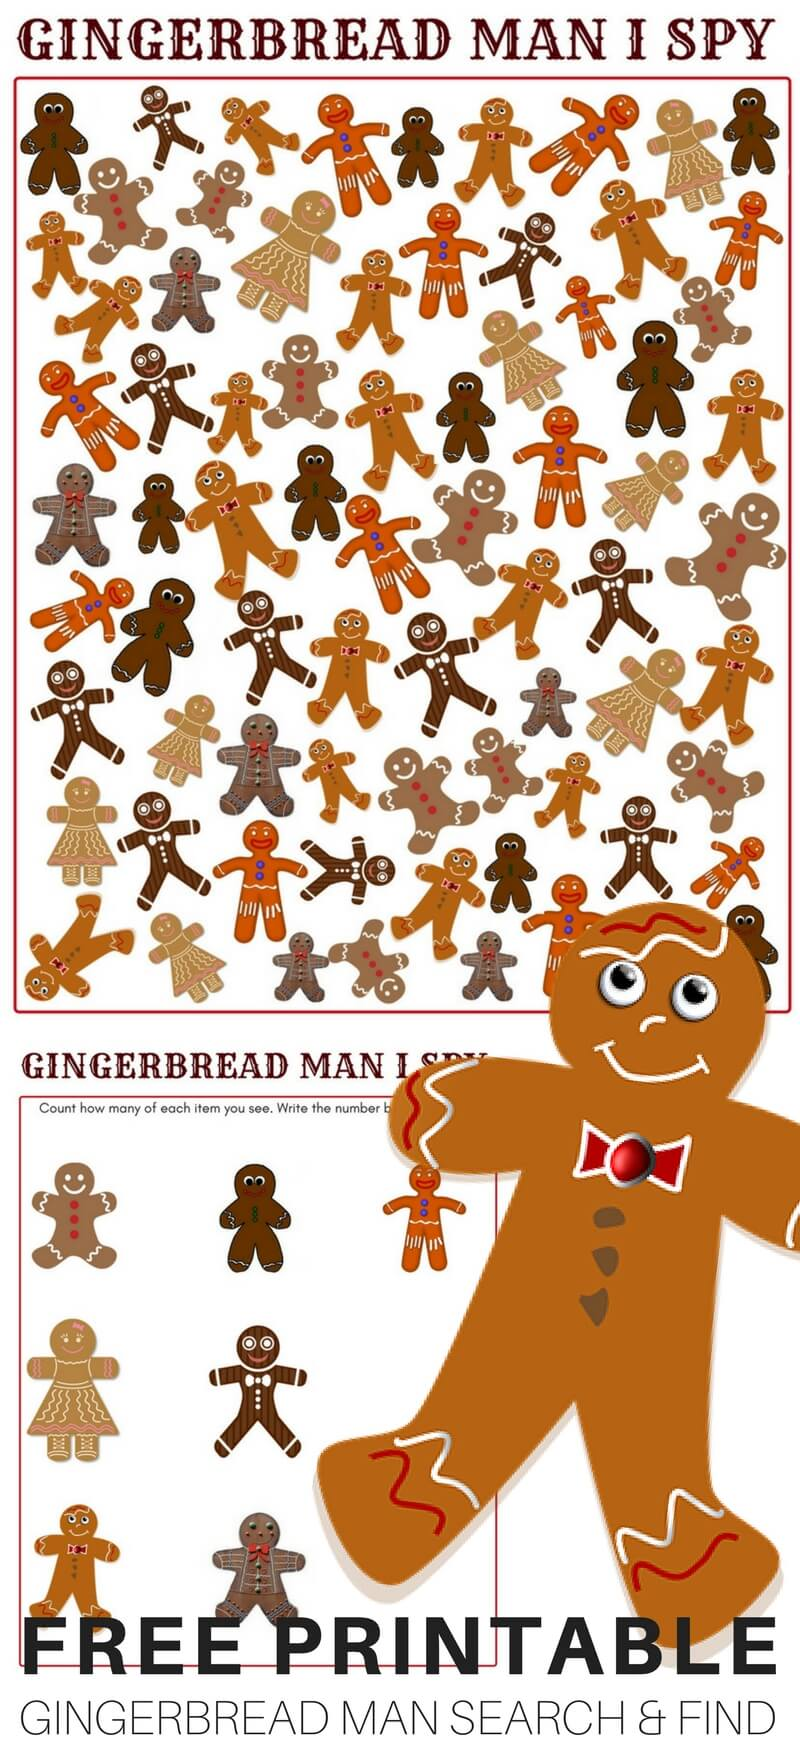 graphic relating to I Spy Printable identify Printable Gingerbread Person Recreation for Little ones Xmas Actions